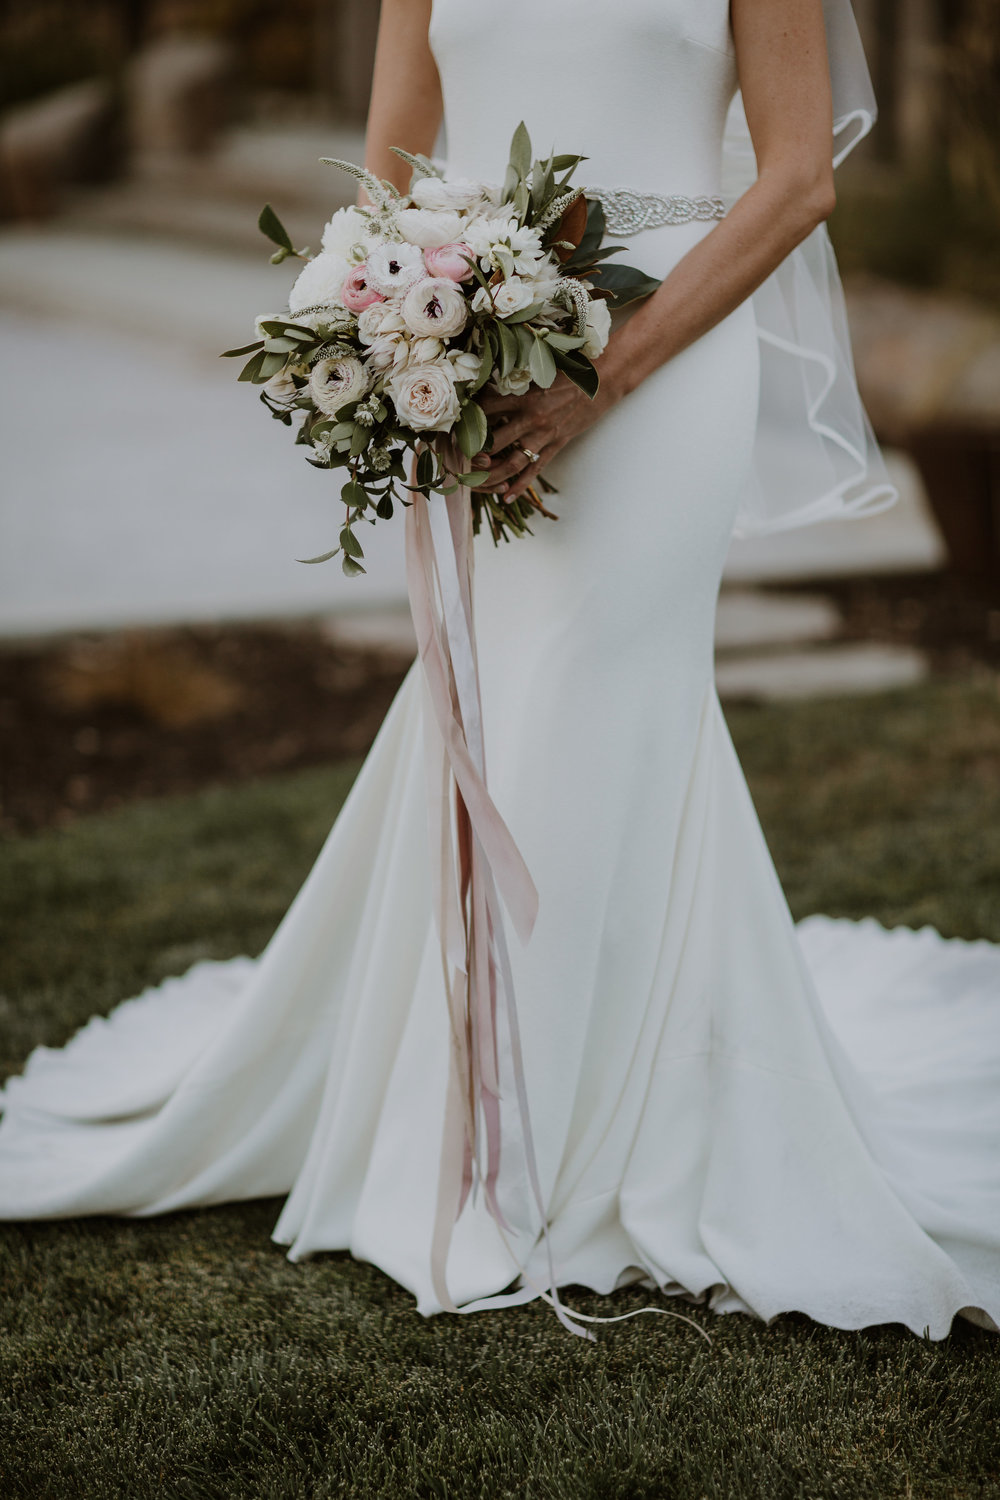 Romantic bridal bouquet with trailing silk ribbons by Venn Floral, photographed by Gretchen Gause Photography.